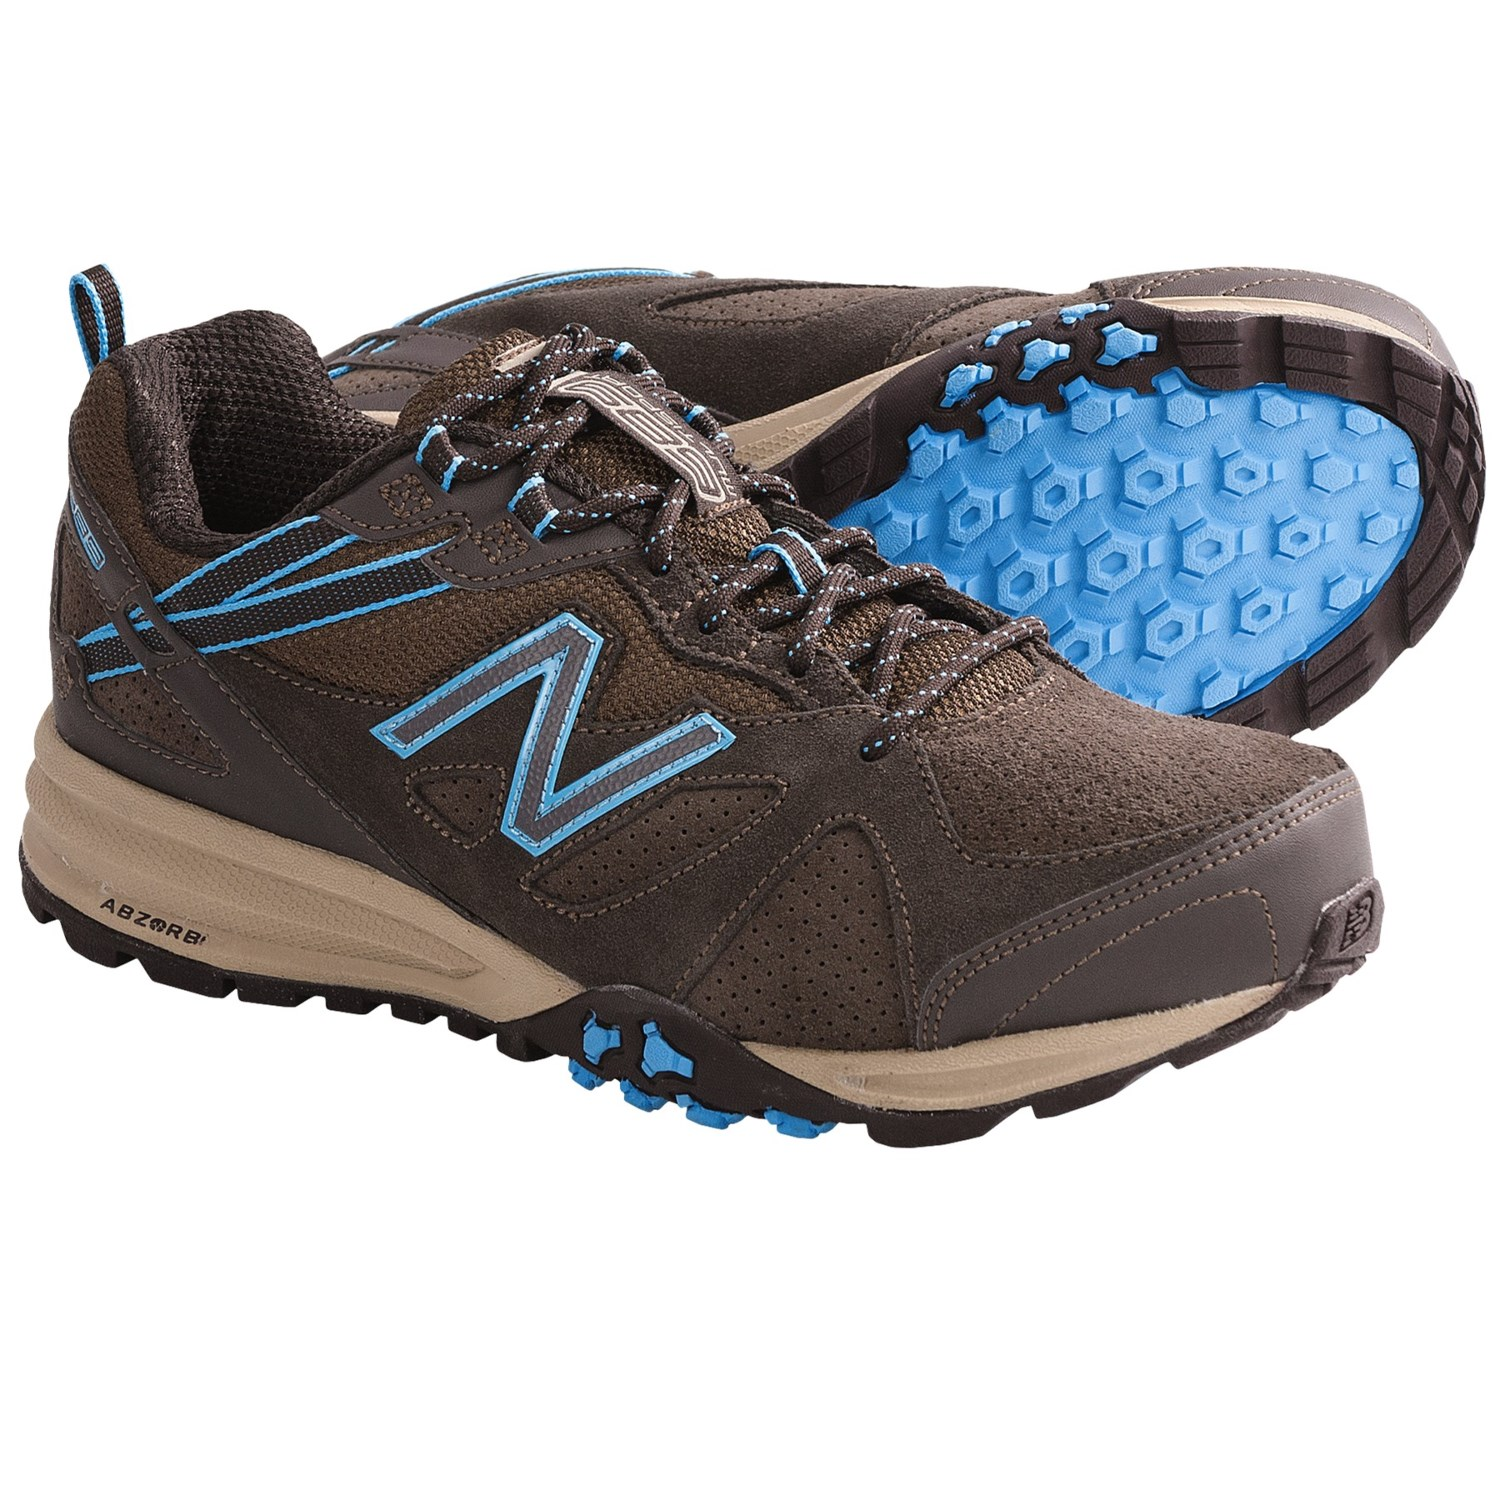 New Balance 689 Trail Shoes - Suede (For Women) in Brown/Light Blue